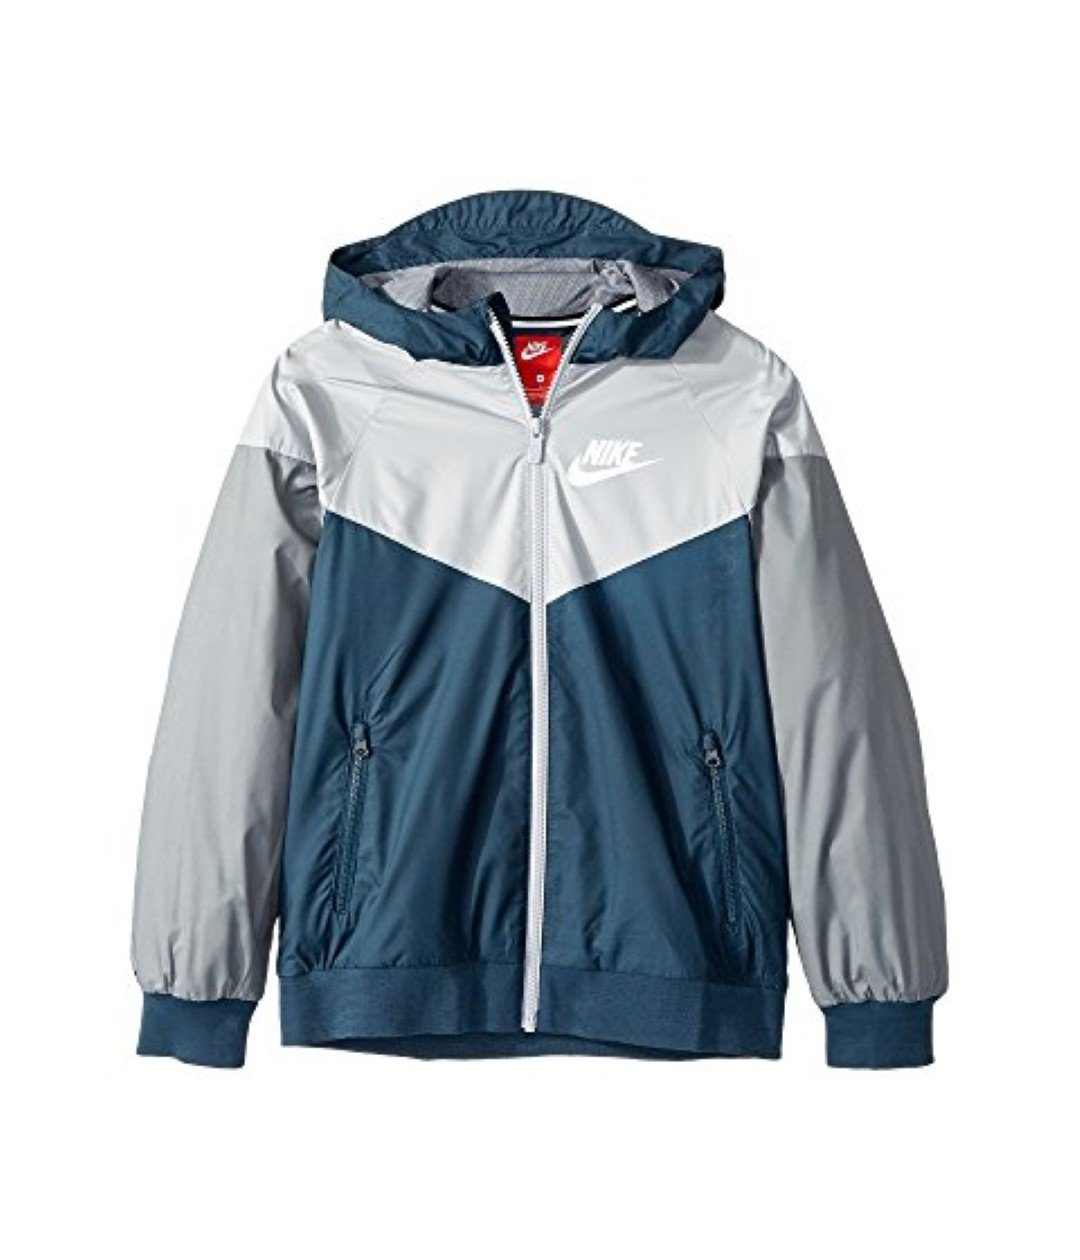 3a759a7bd7cc Galleon - NIKE Kids Sportswear Windrunner Jacket (Small Youth Boys ...